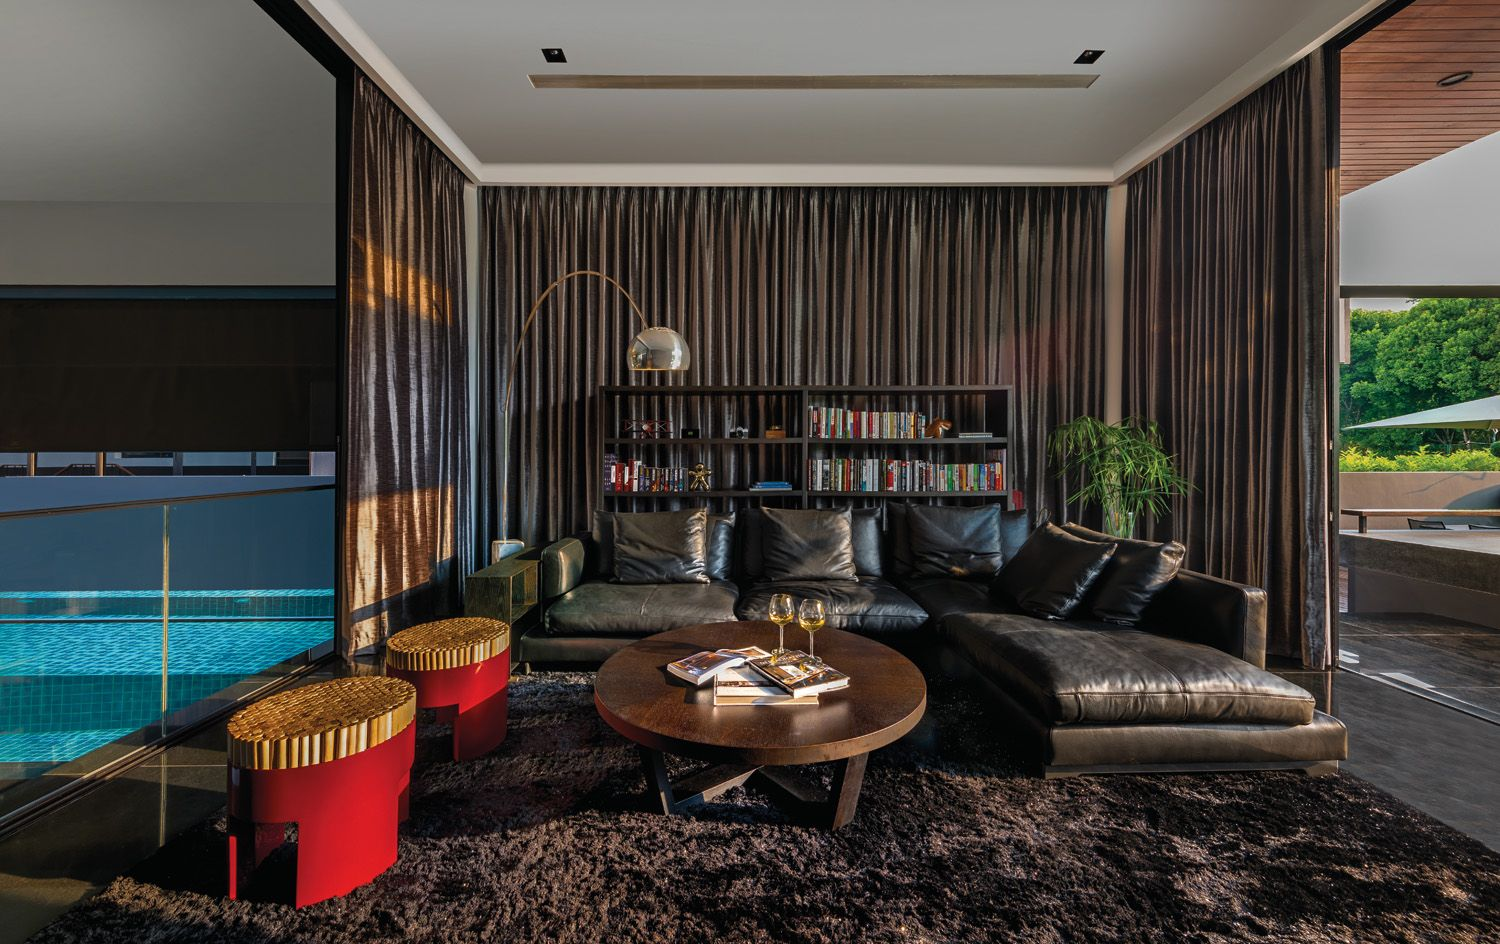 Renaissance Planners and Design nordic style home living area